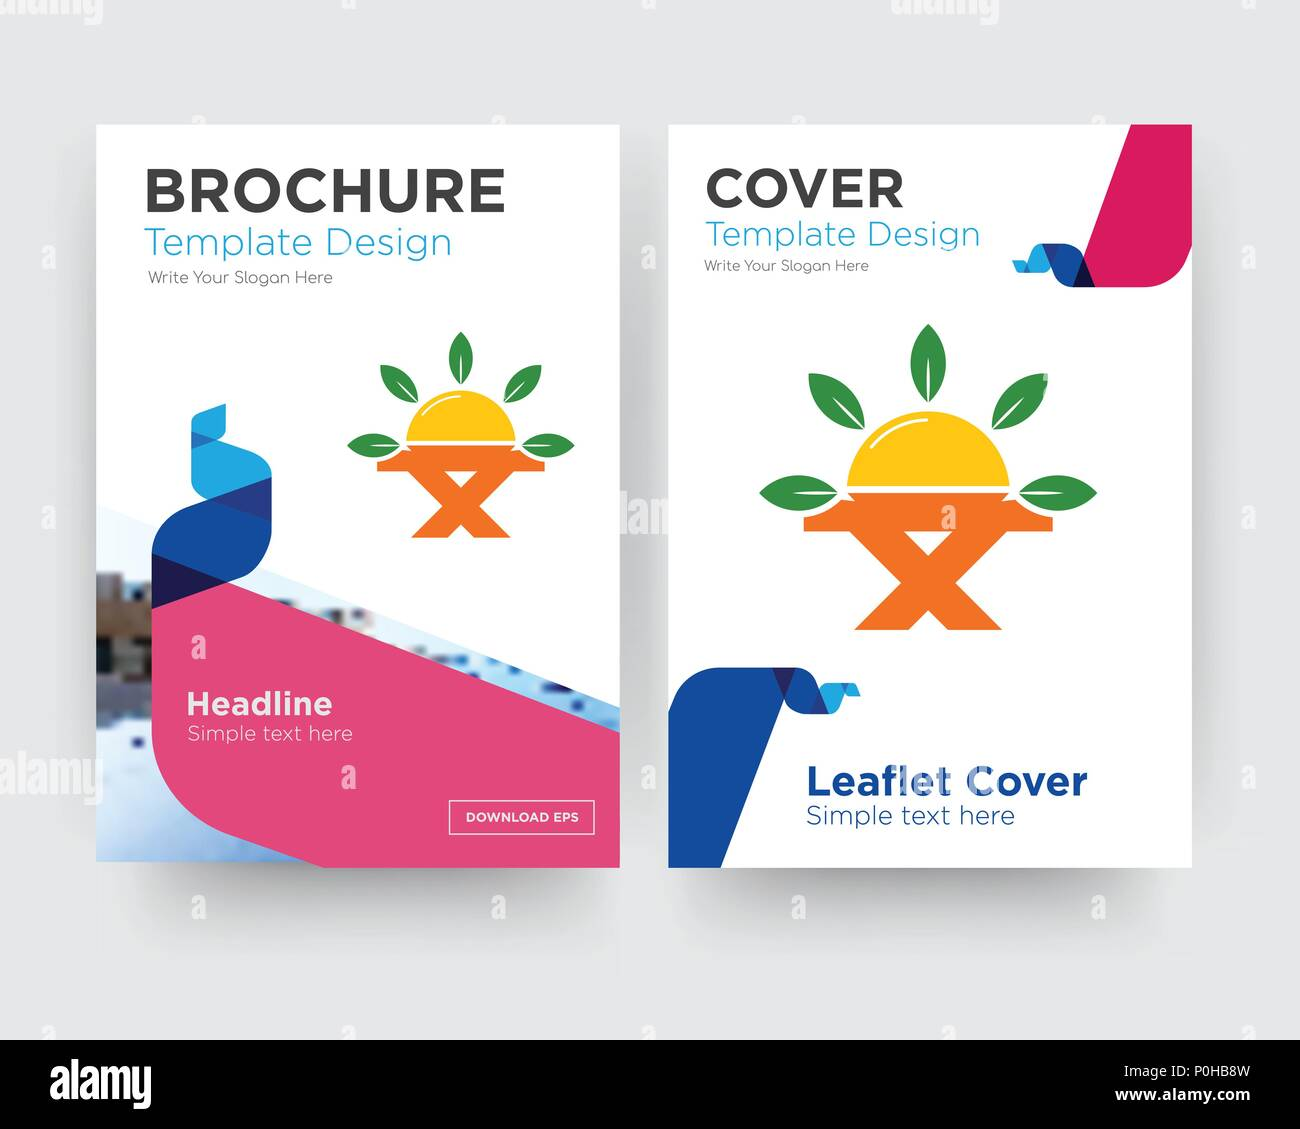 farm to table brochure flyer design template with abstract photo background, minimalist trend business corporate roll up or annual report Stock Vector